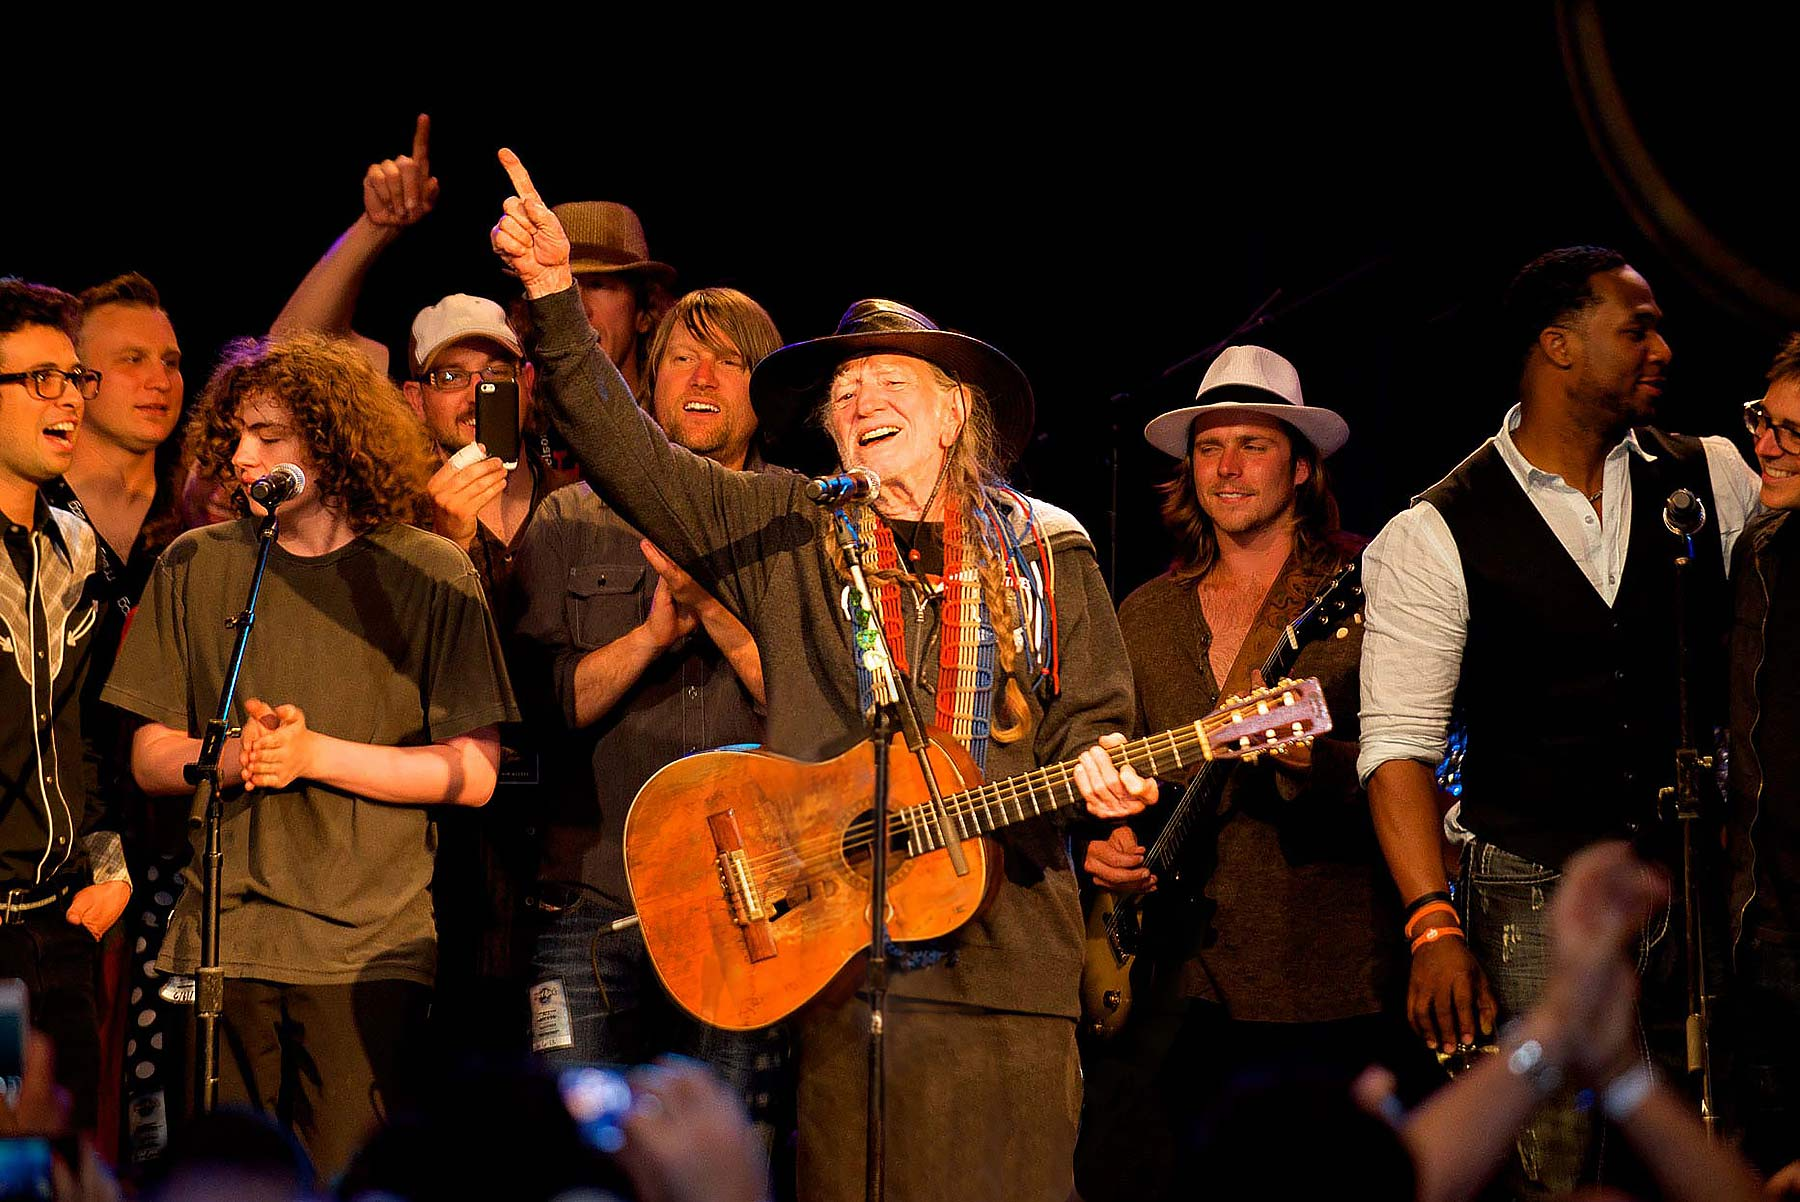 Willie-Nelson-and-family-at-80th-birthday-concert